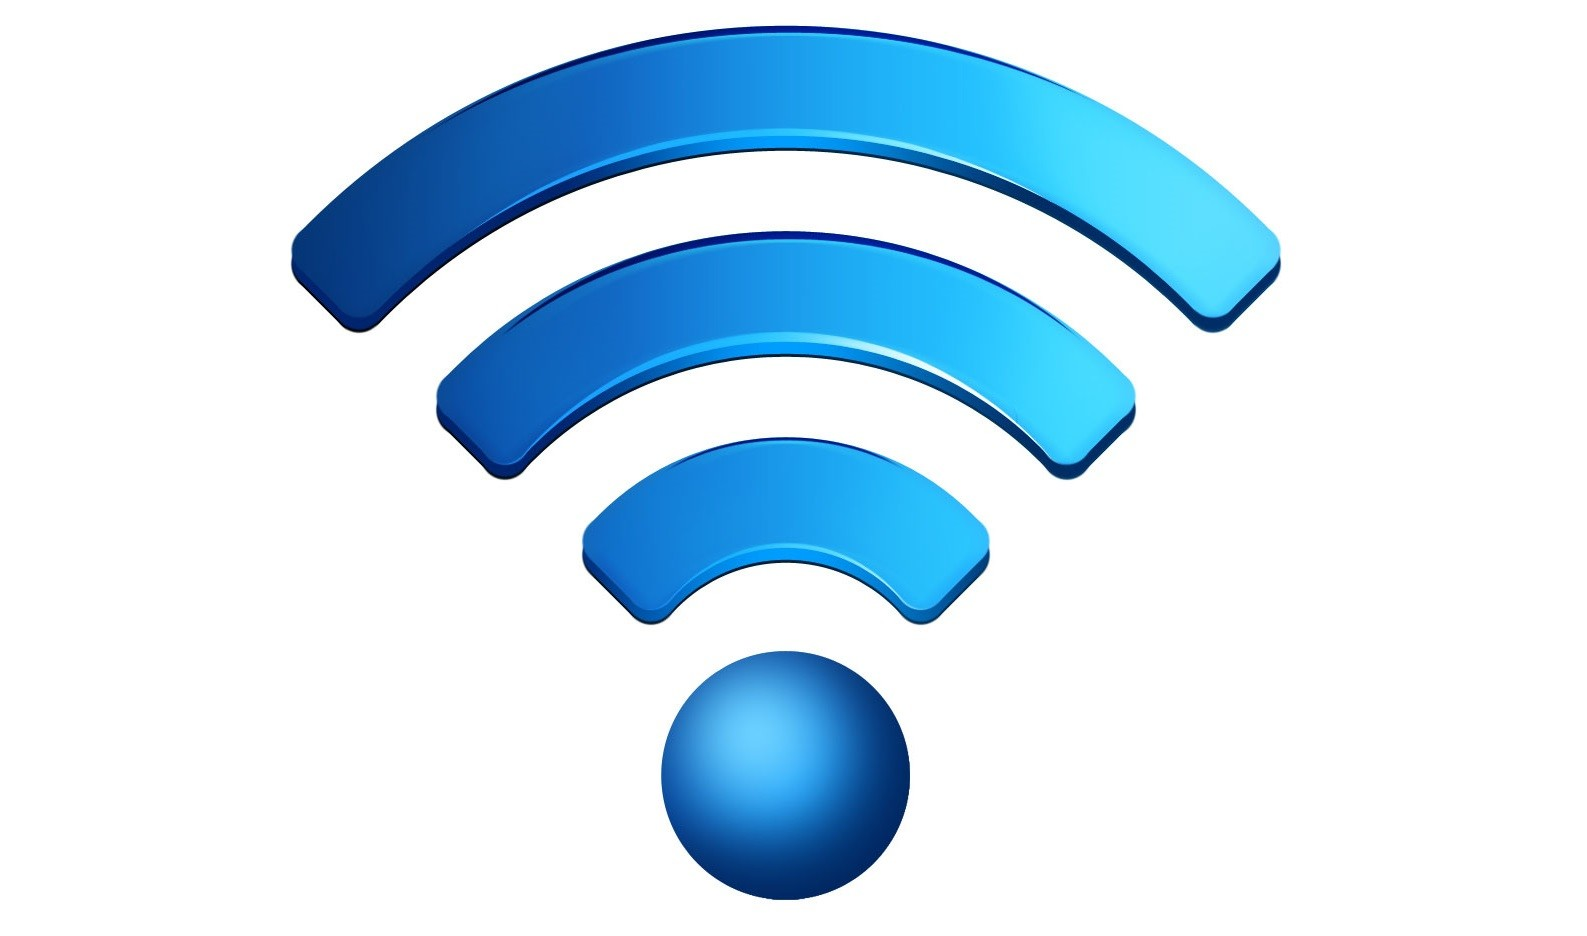 'All Wi-Fi' devices are under threat, says report